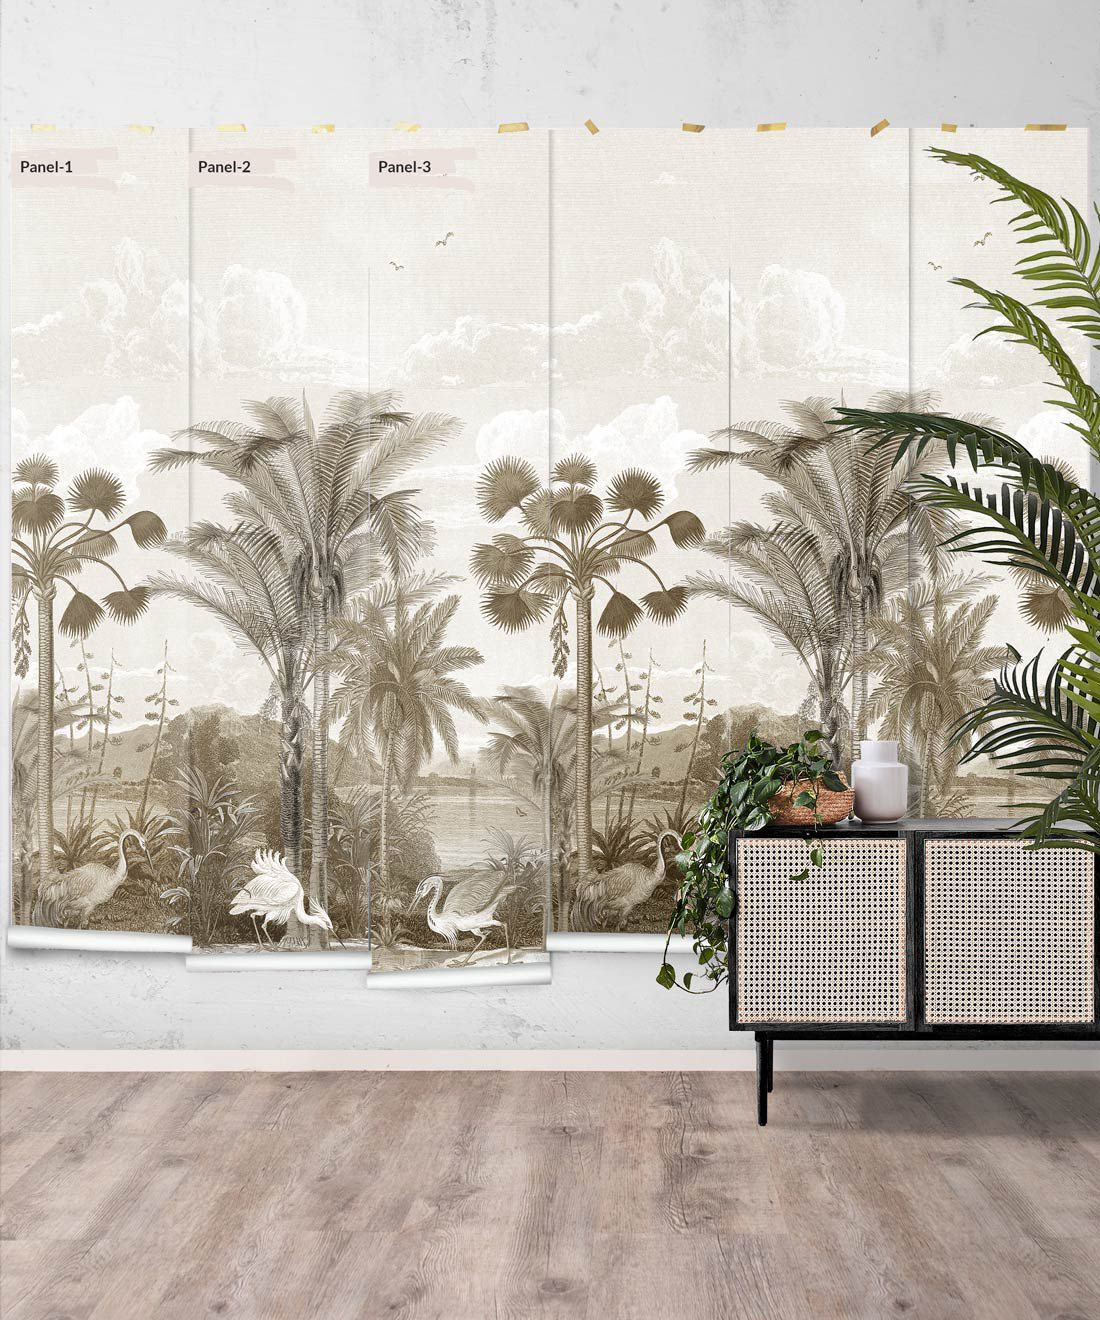 Indian Subcontinent Wallpaper Mural •Bethany Linz • Palm Tree Mural • Sepia • Panels